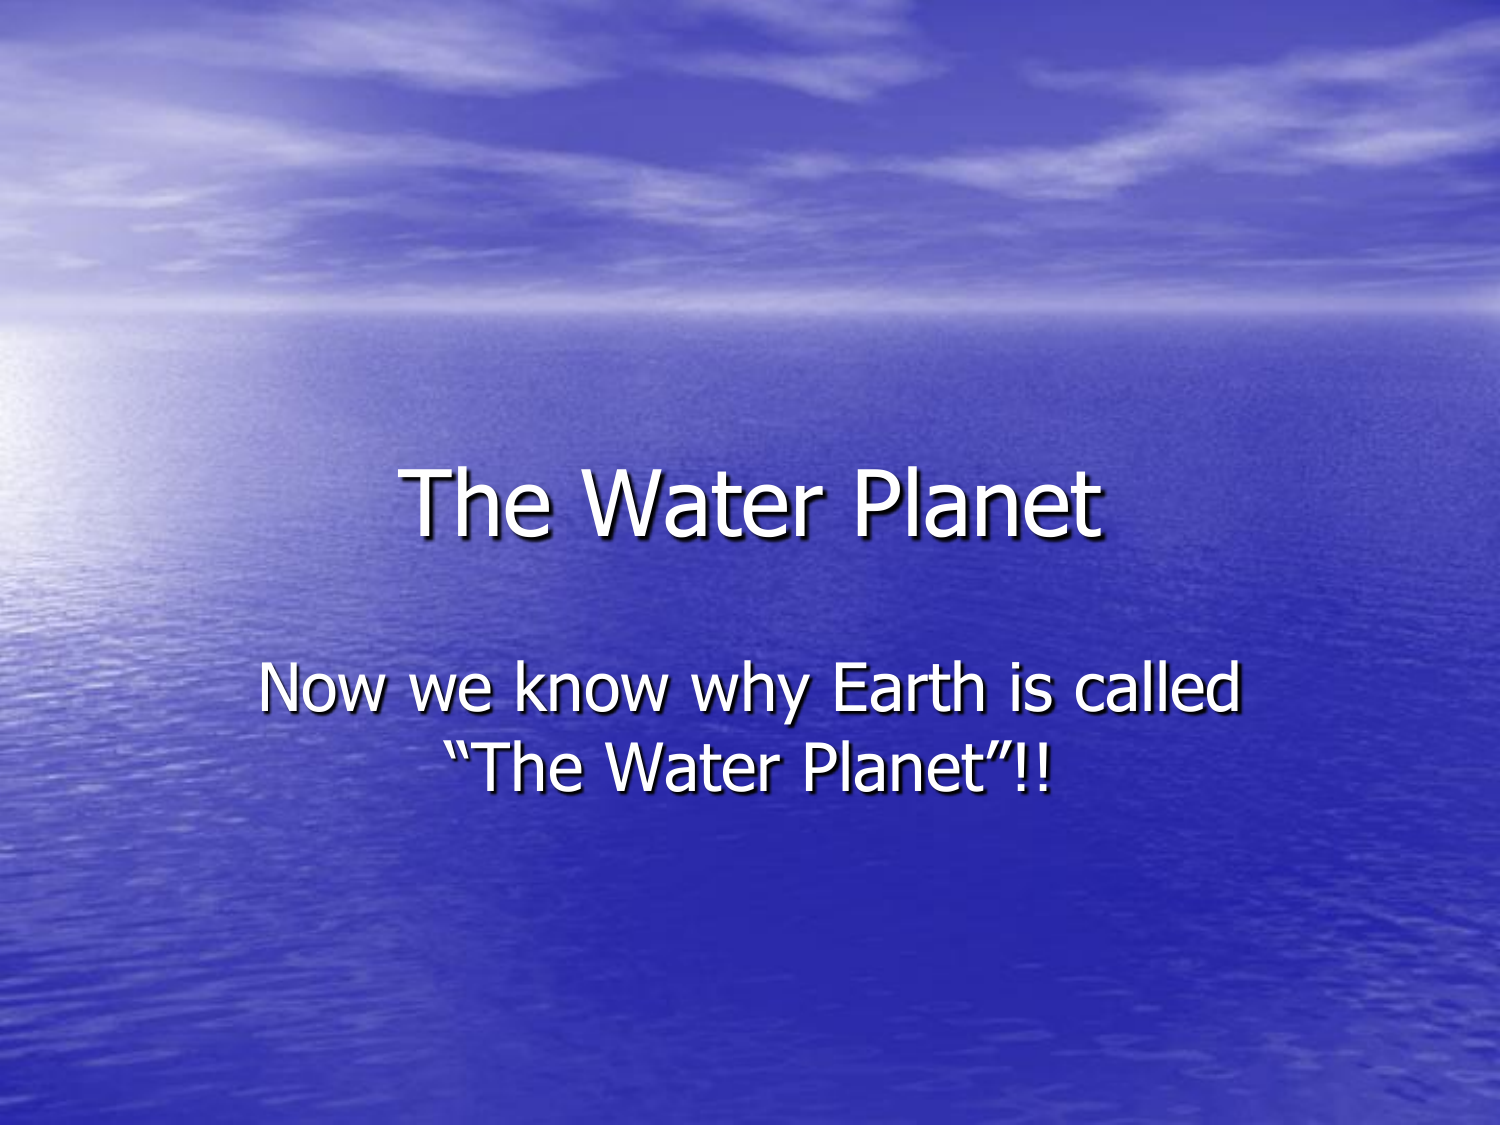 Why was water called water